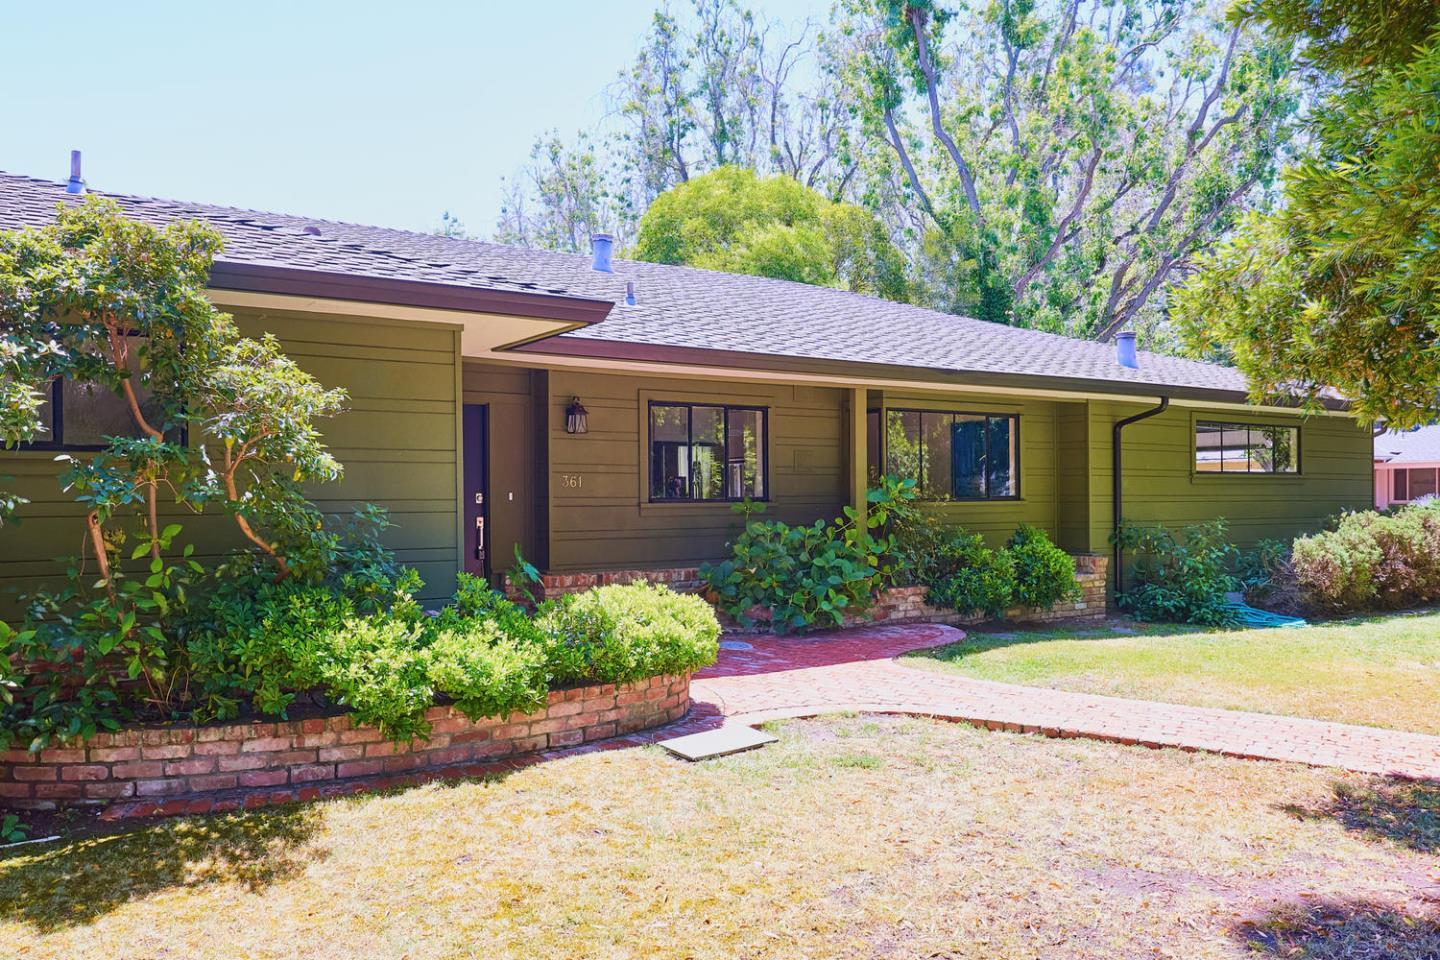 361 SHERWOOD WAY, MENLO PARK, CA 94025